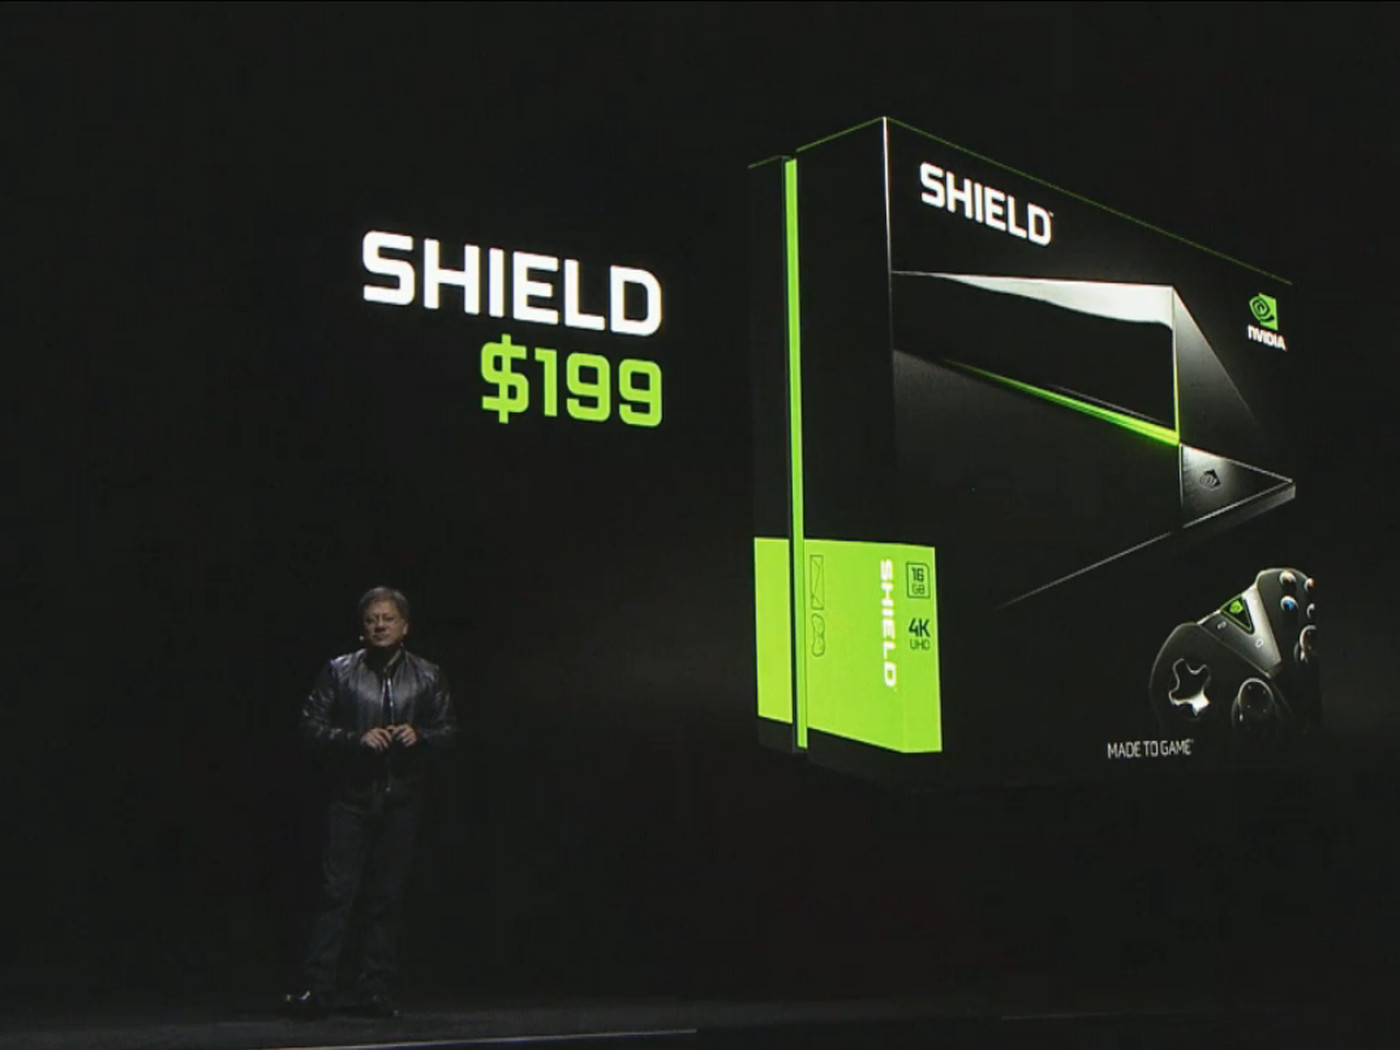 The new Nvidia Shield is the 'world's first 4K Android TV